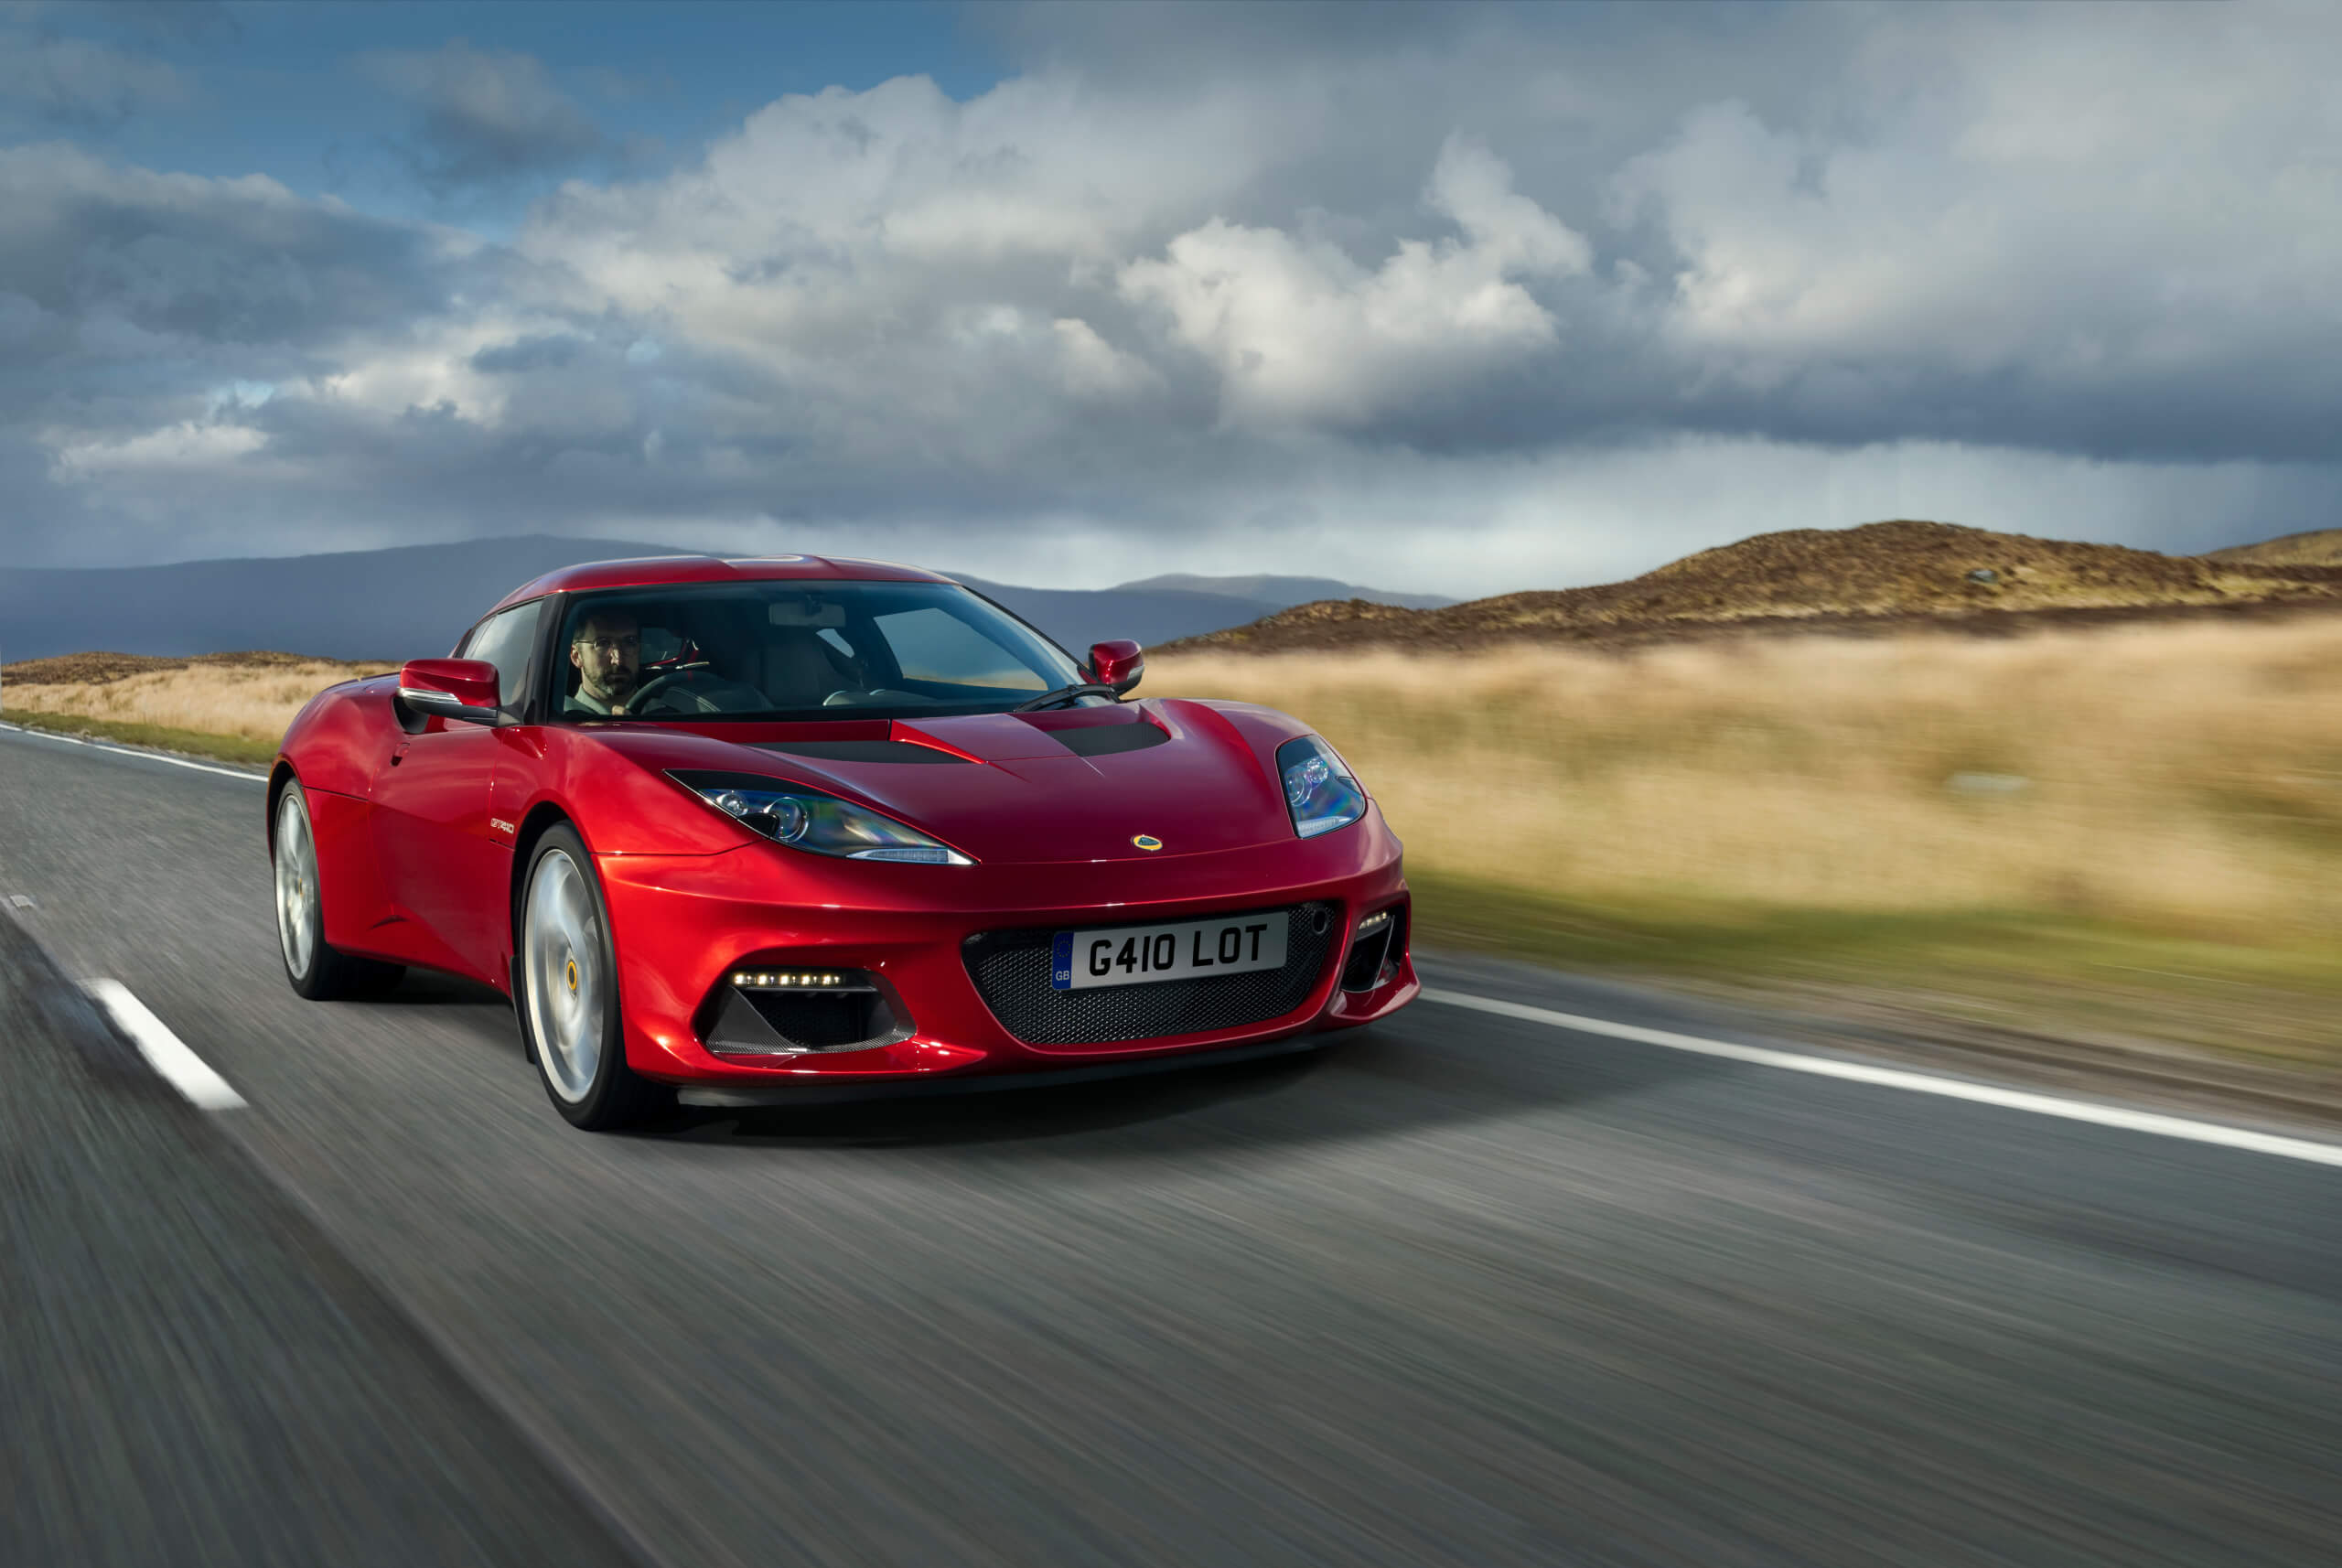 The Lotus Evora GT410 joins the brand's lineup.